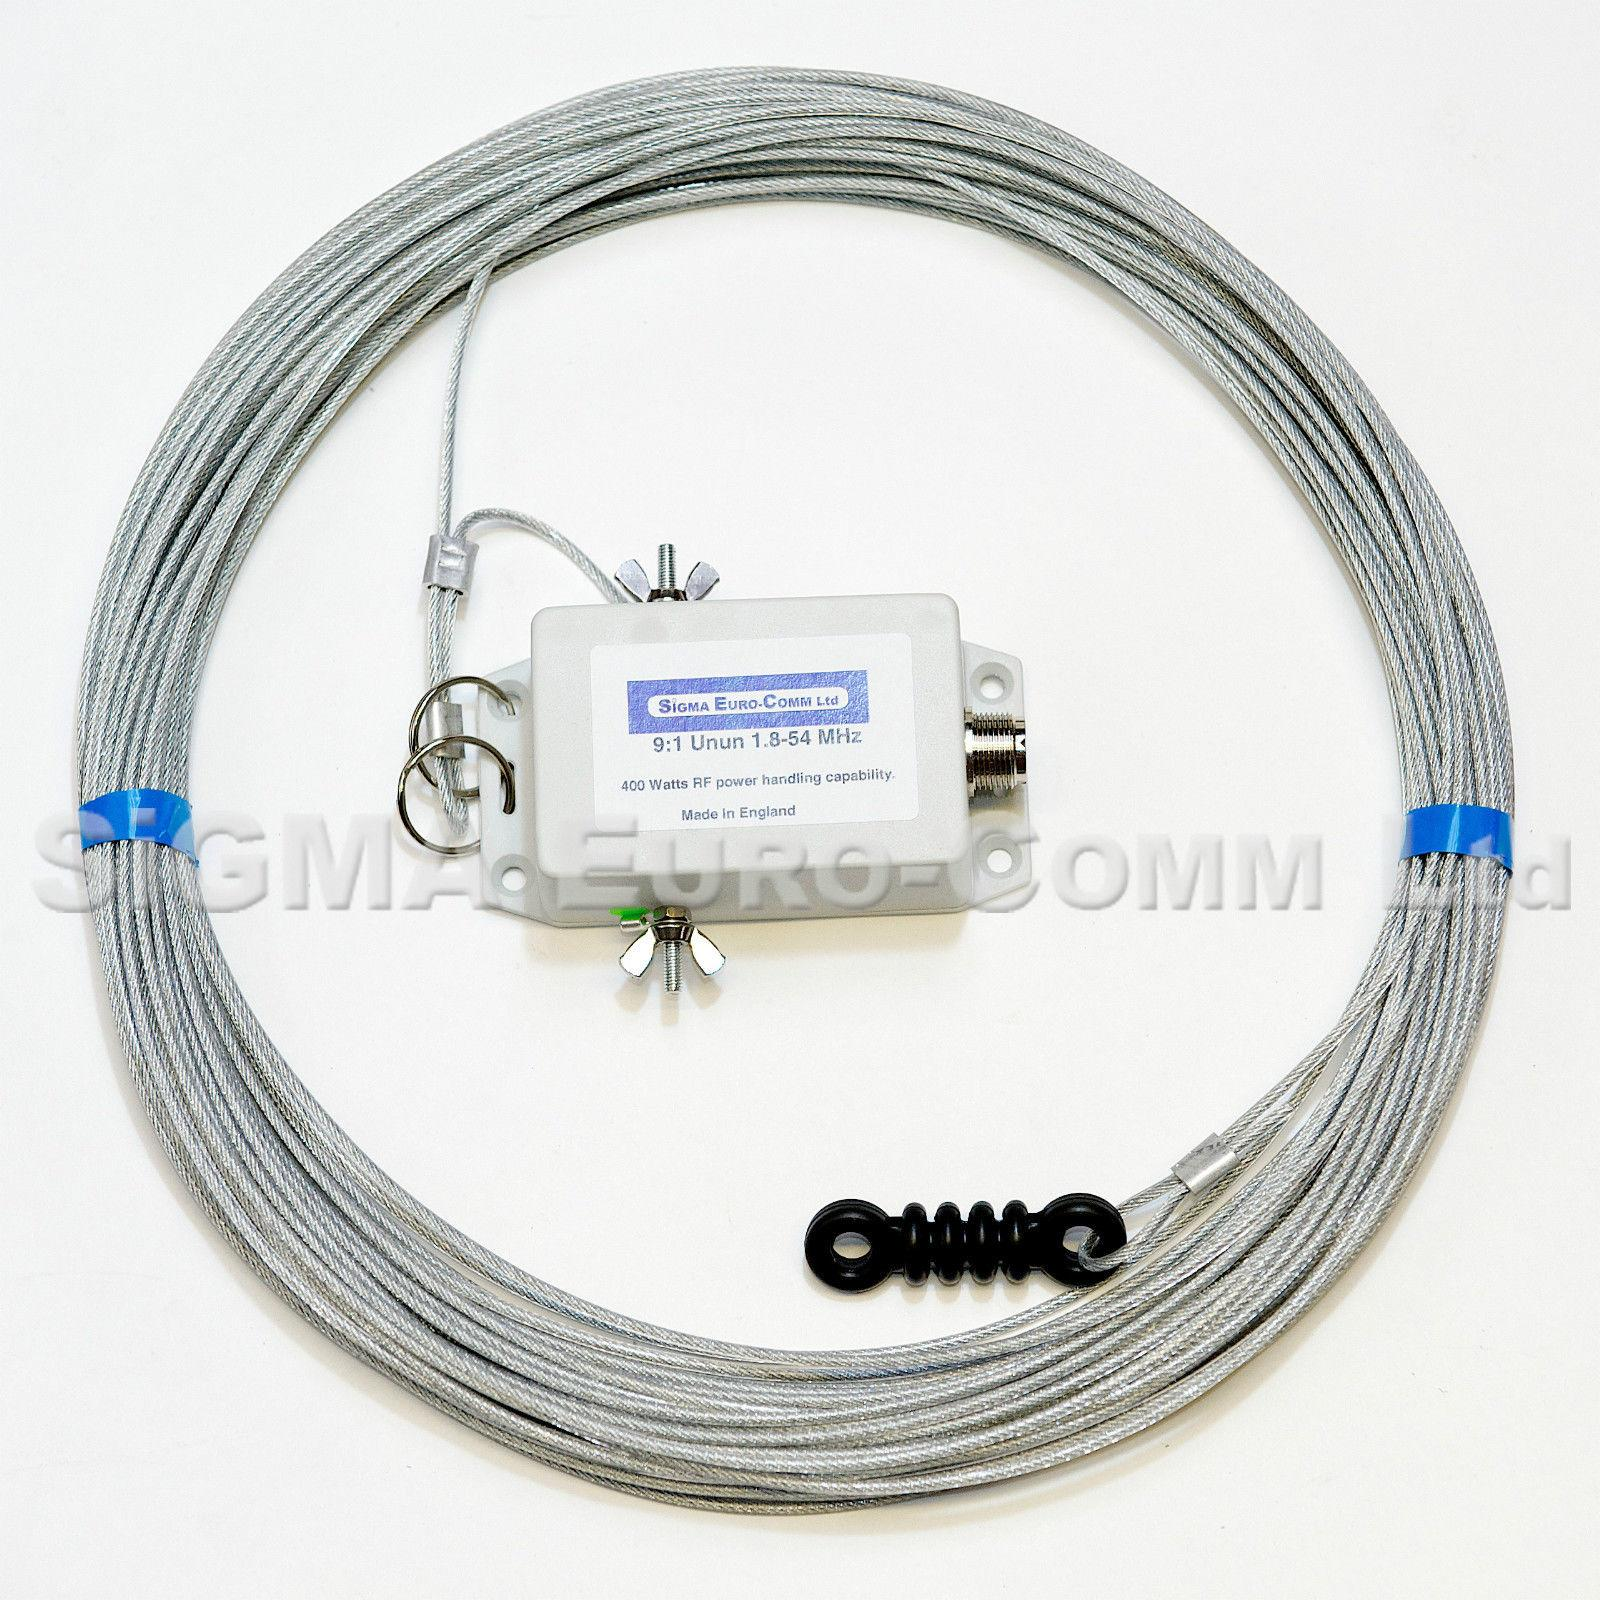 LW-20 HF 80 – 6m Multiband Long Wire Antenna / Aerial